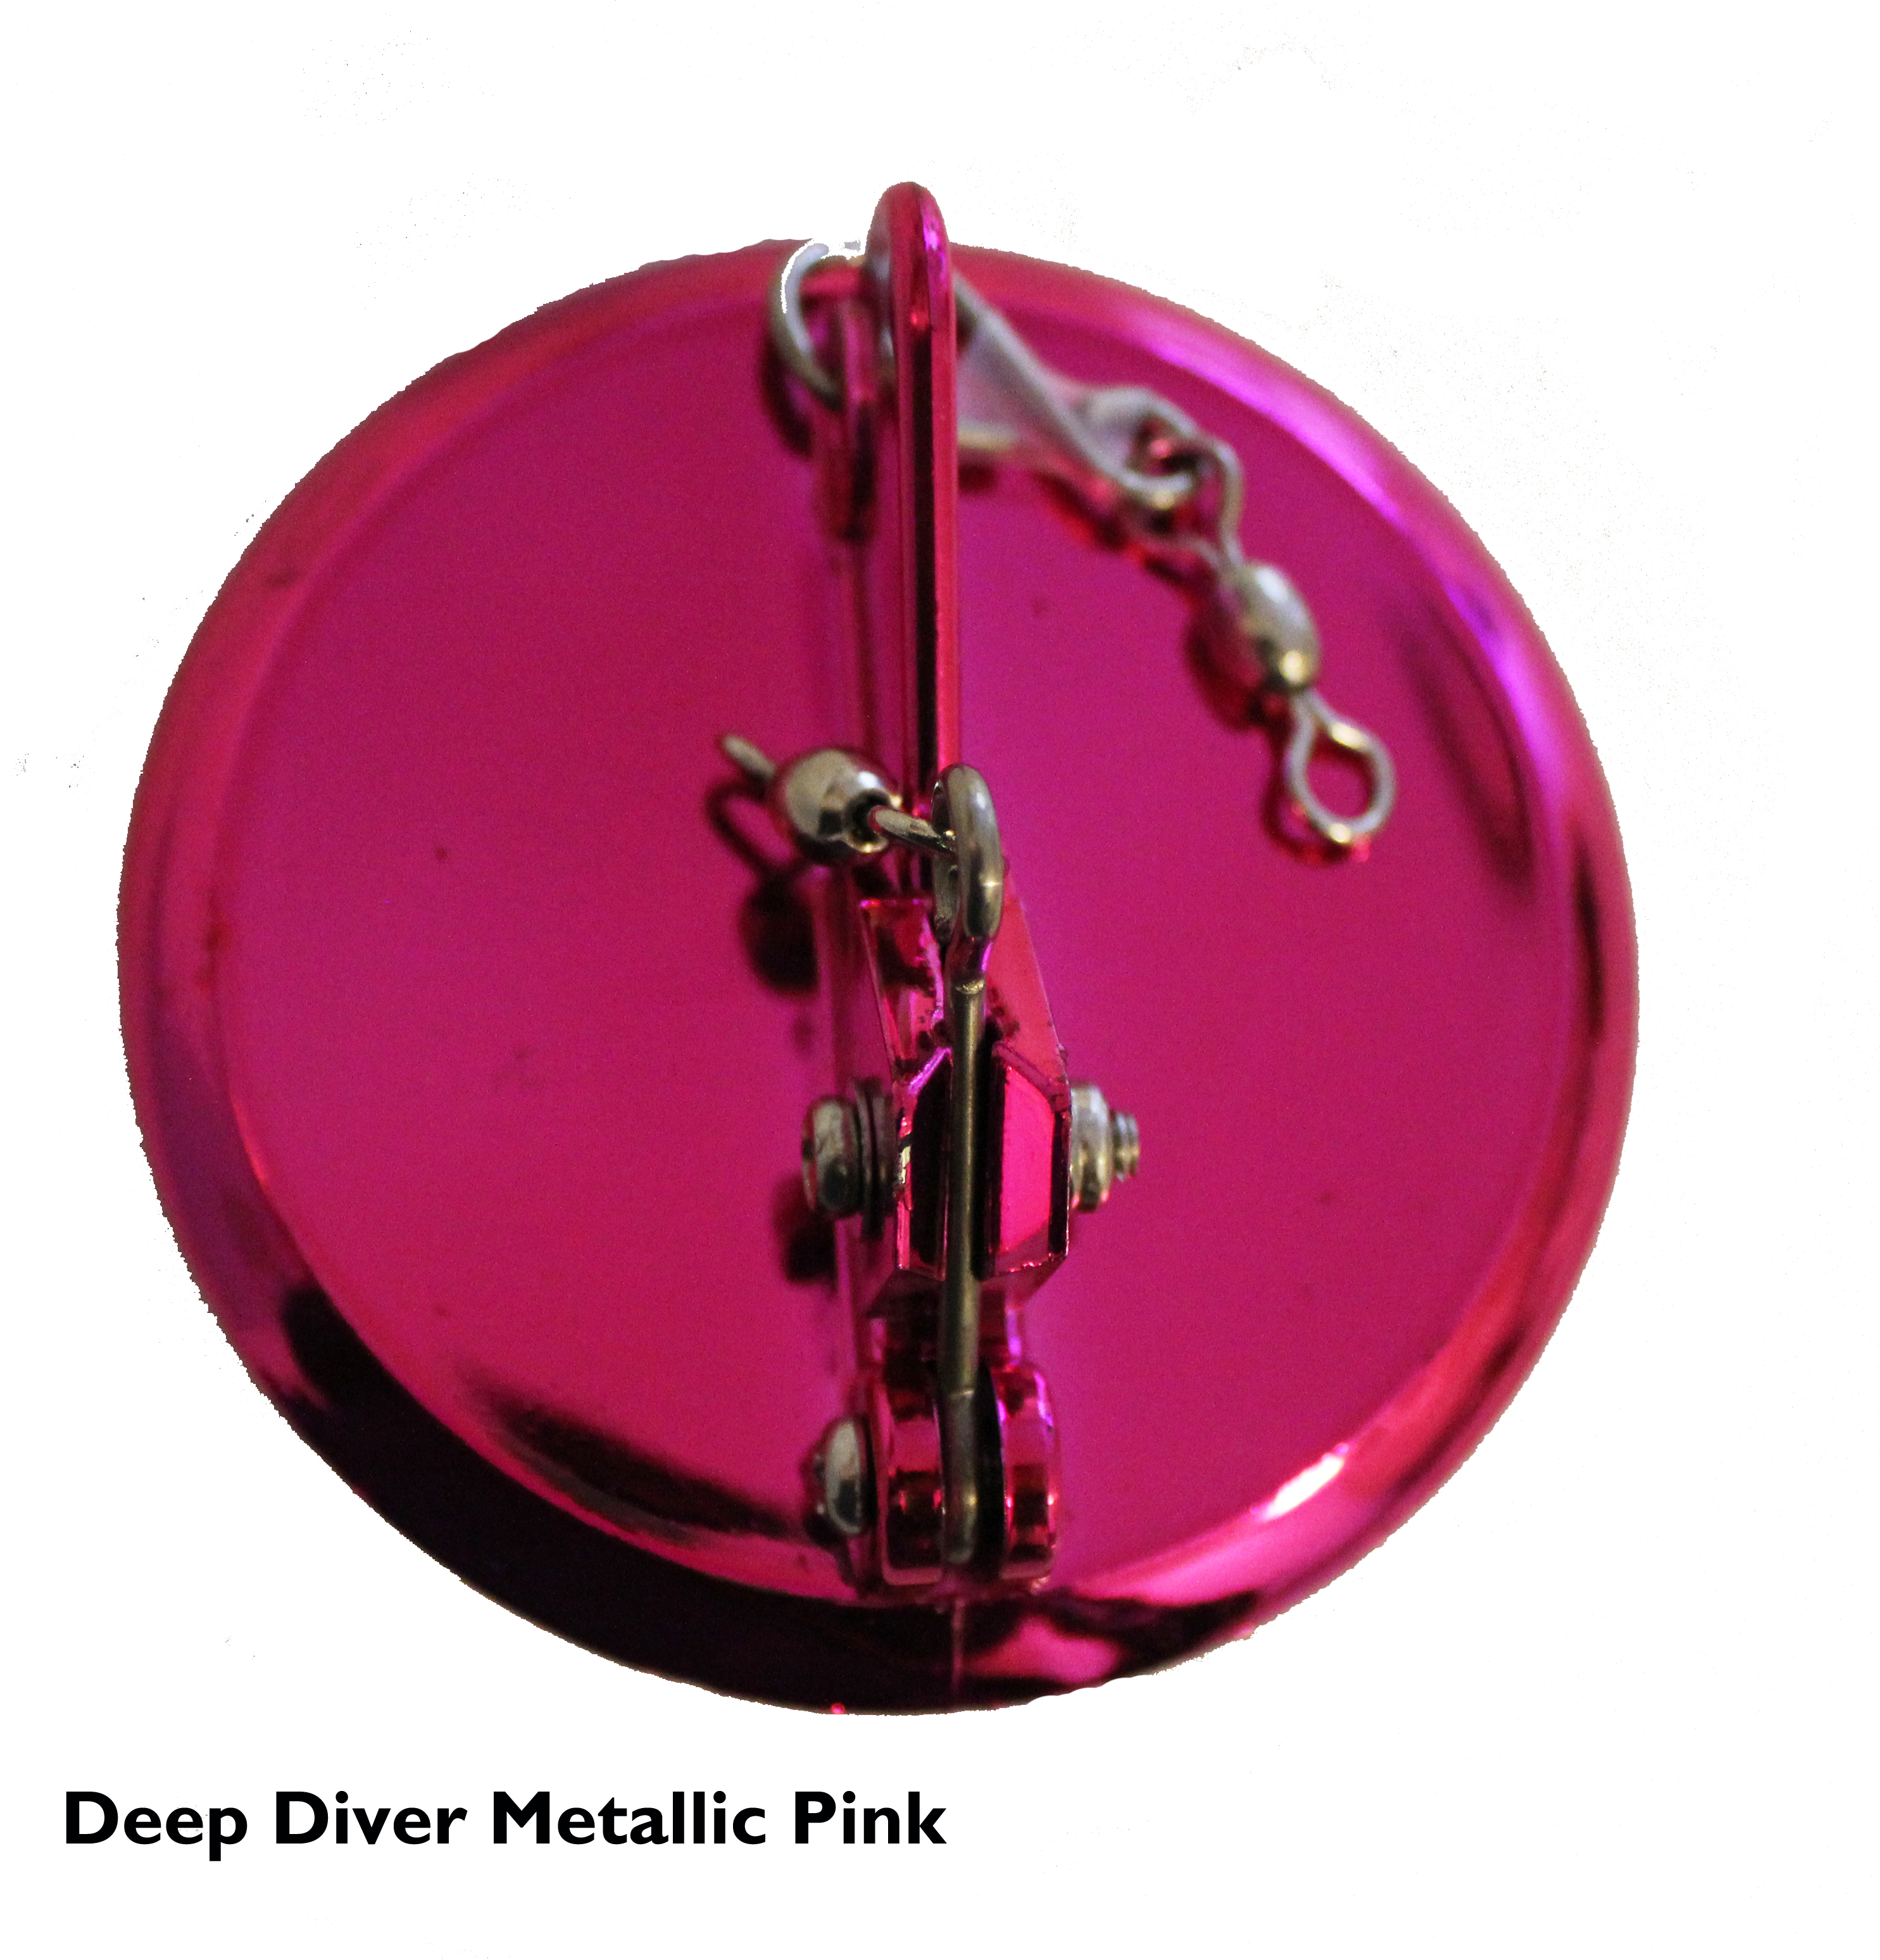 DC Deeper Diver 124mm Metallic P